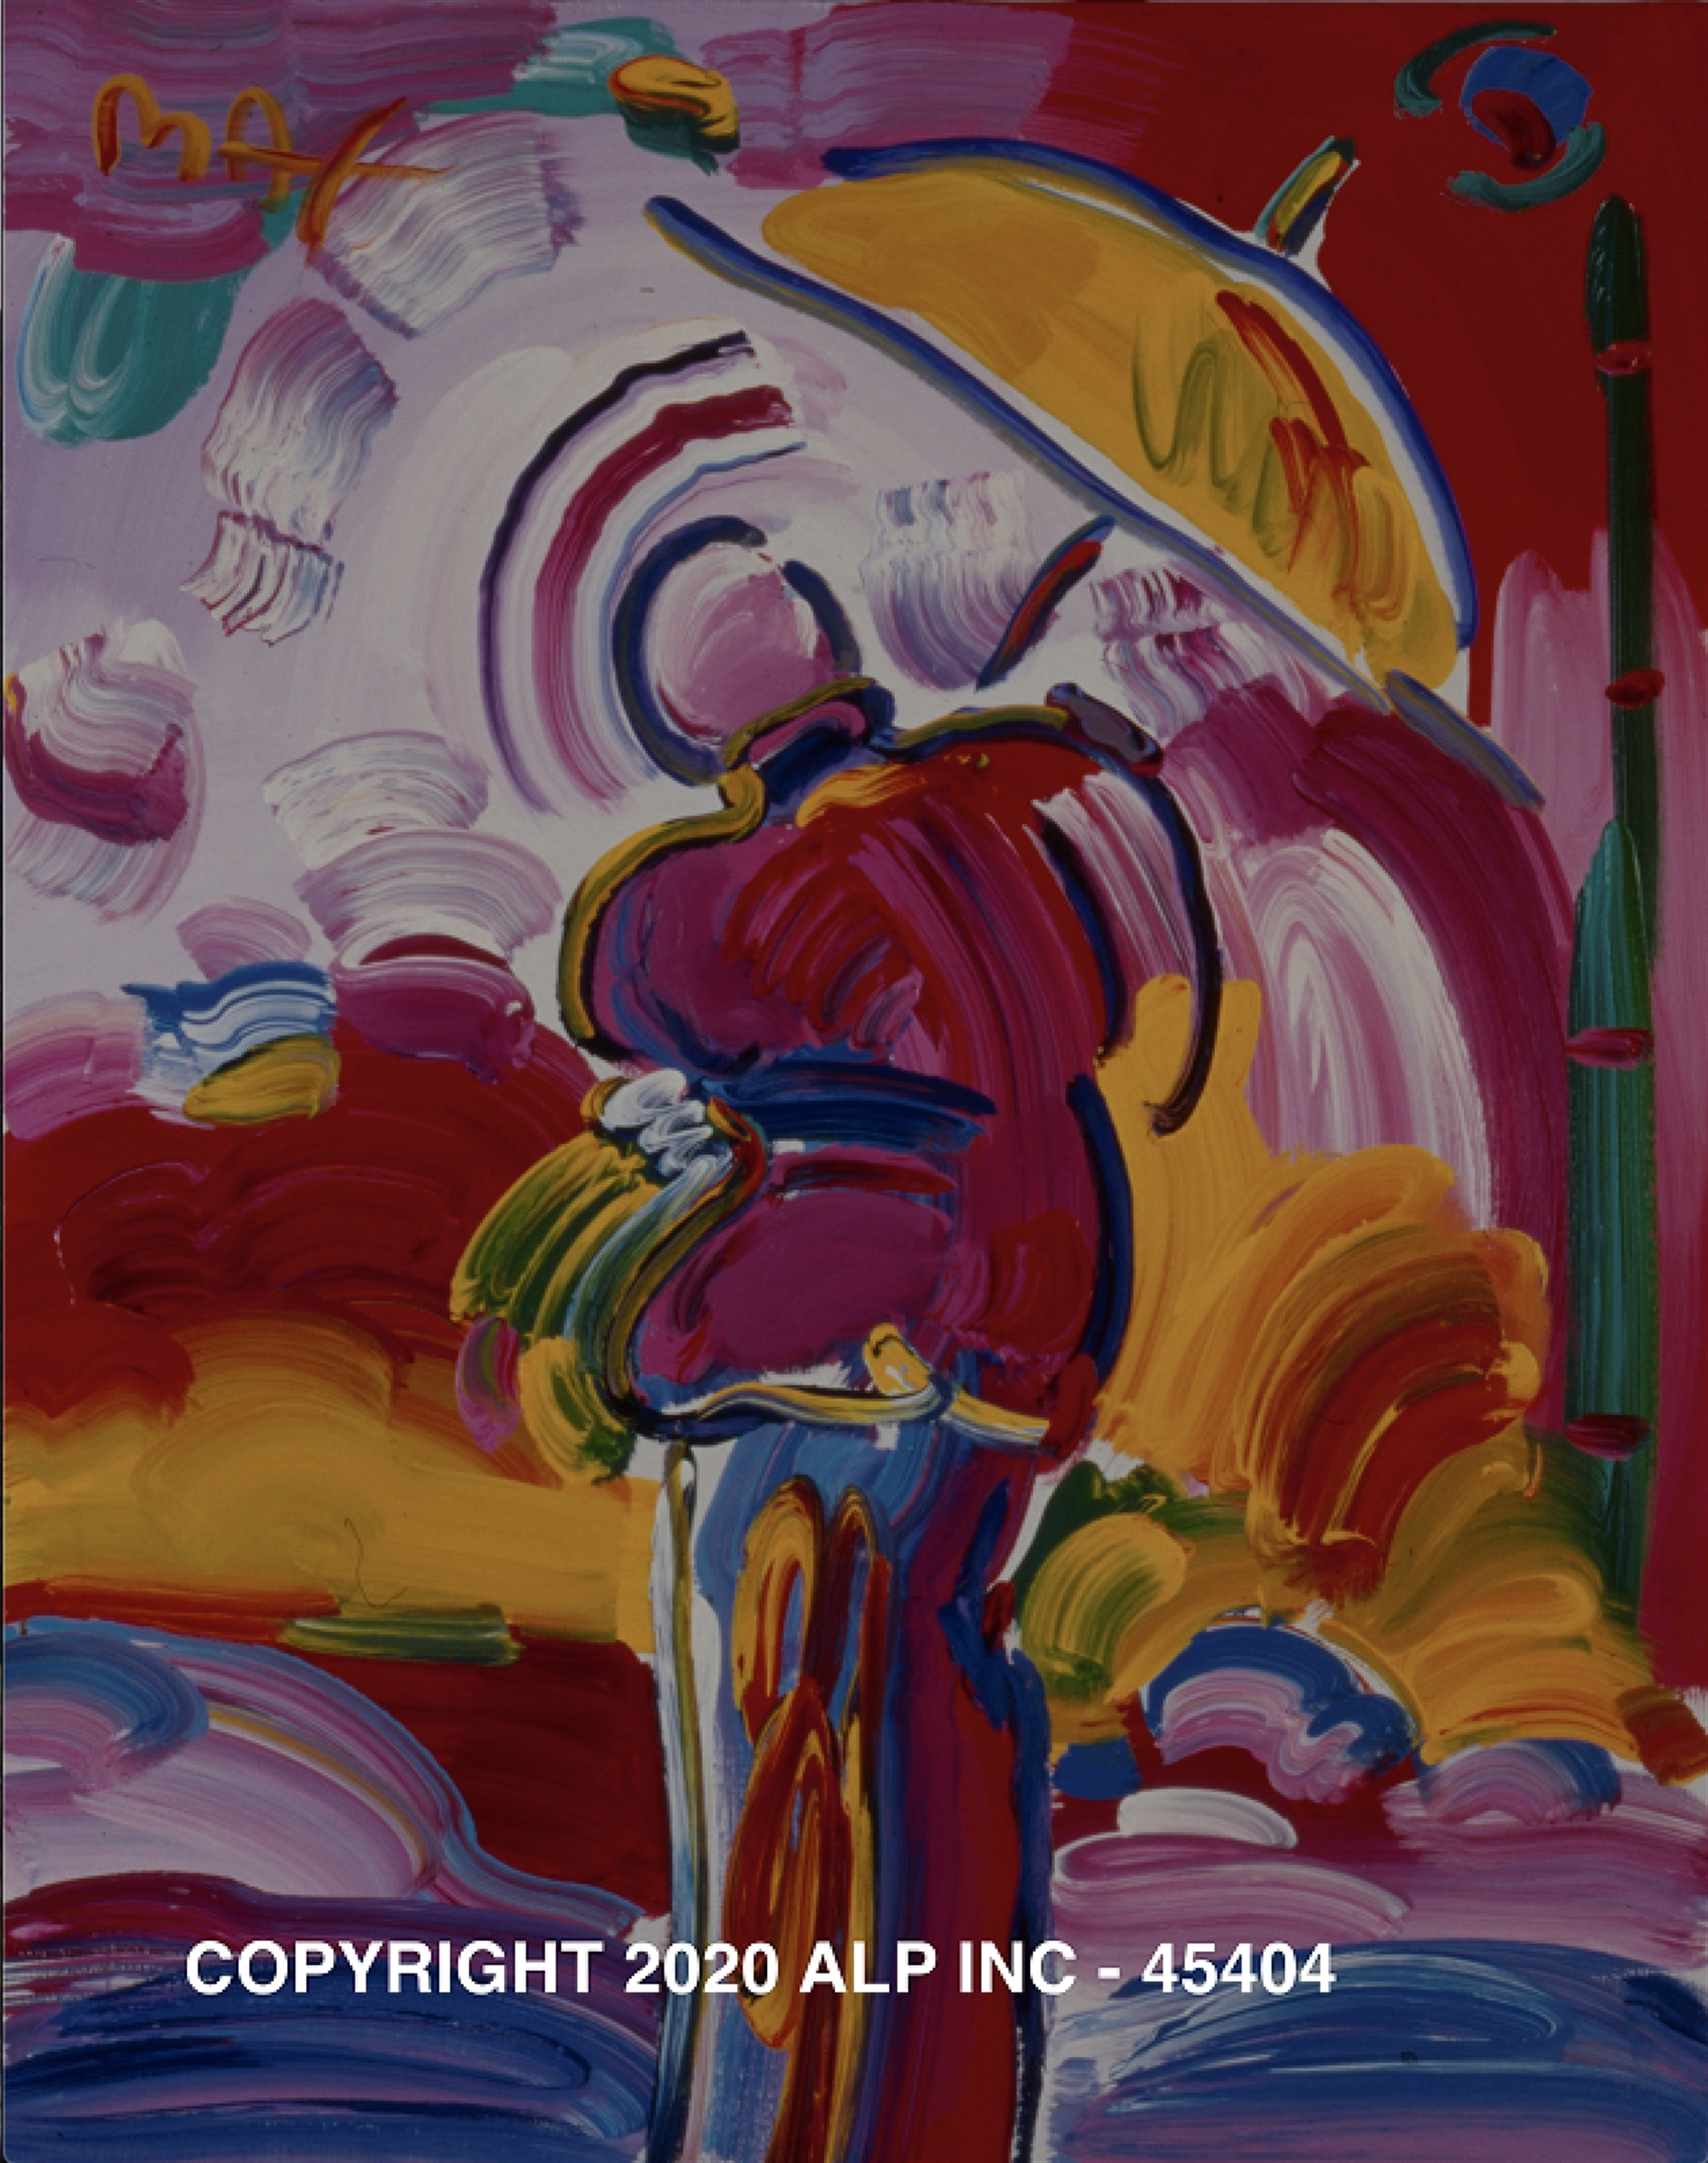 Sage with Umbrella III Ver. II #1 - Vintage Collection by Peter Max